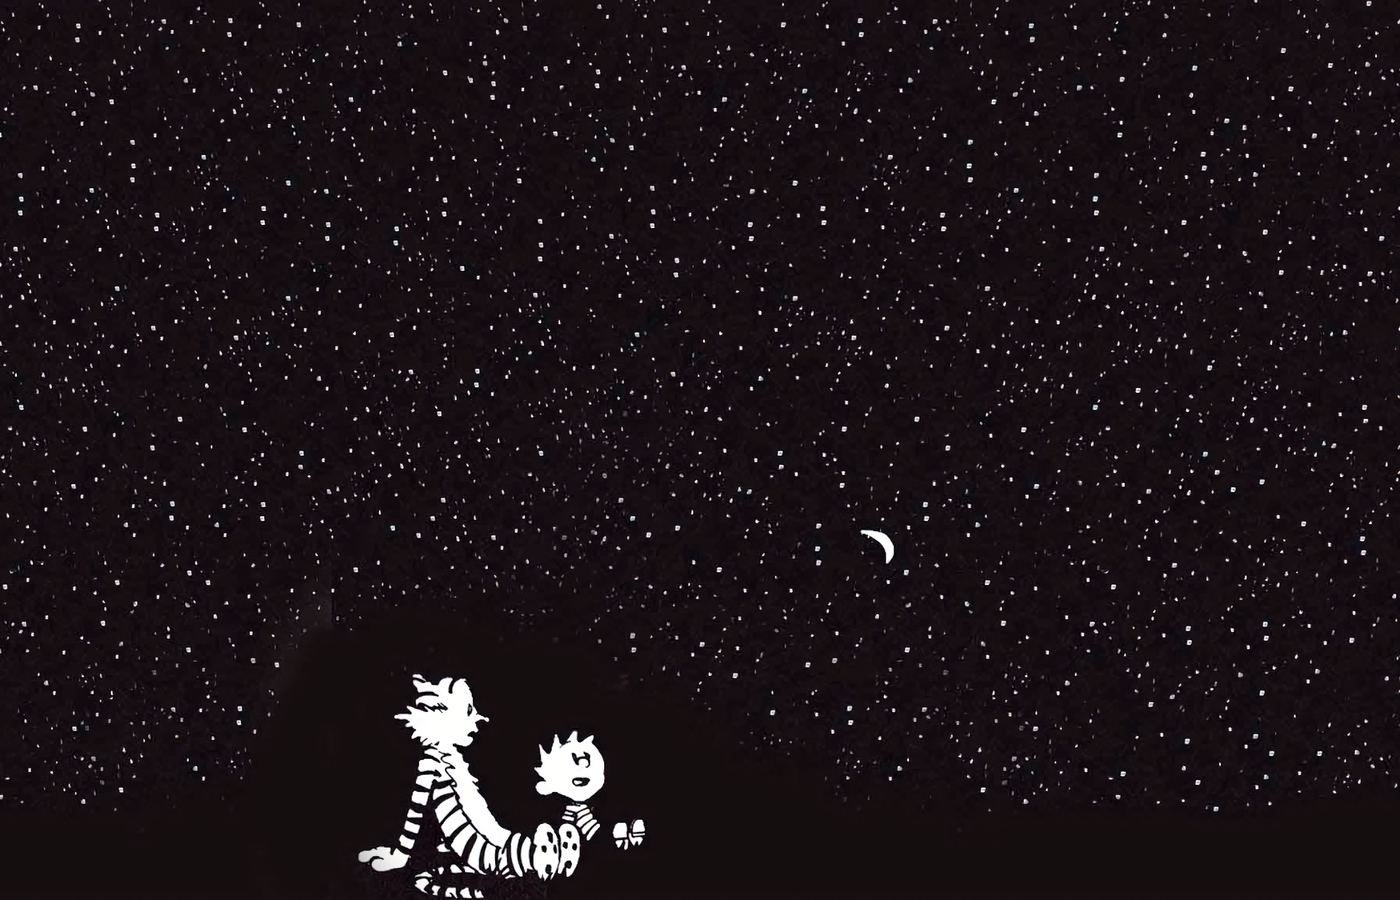 calvin-and-hobbes-4k-p4.jpg